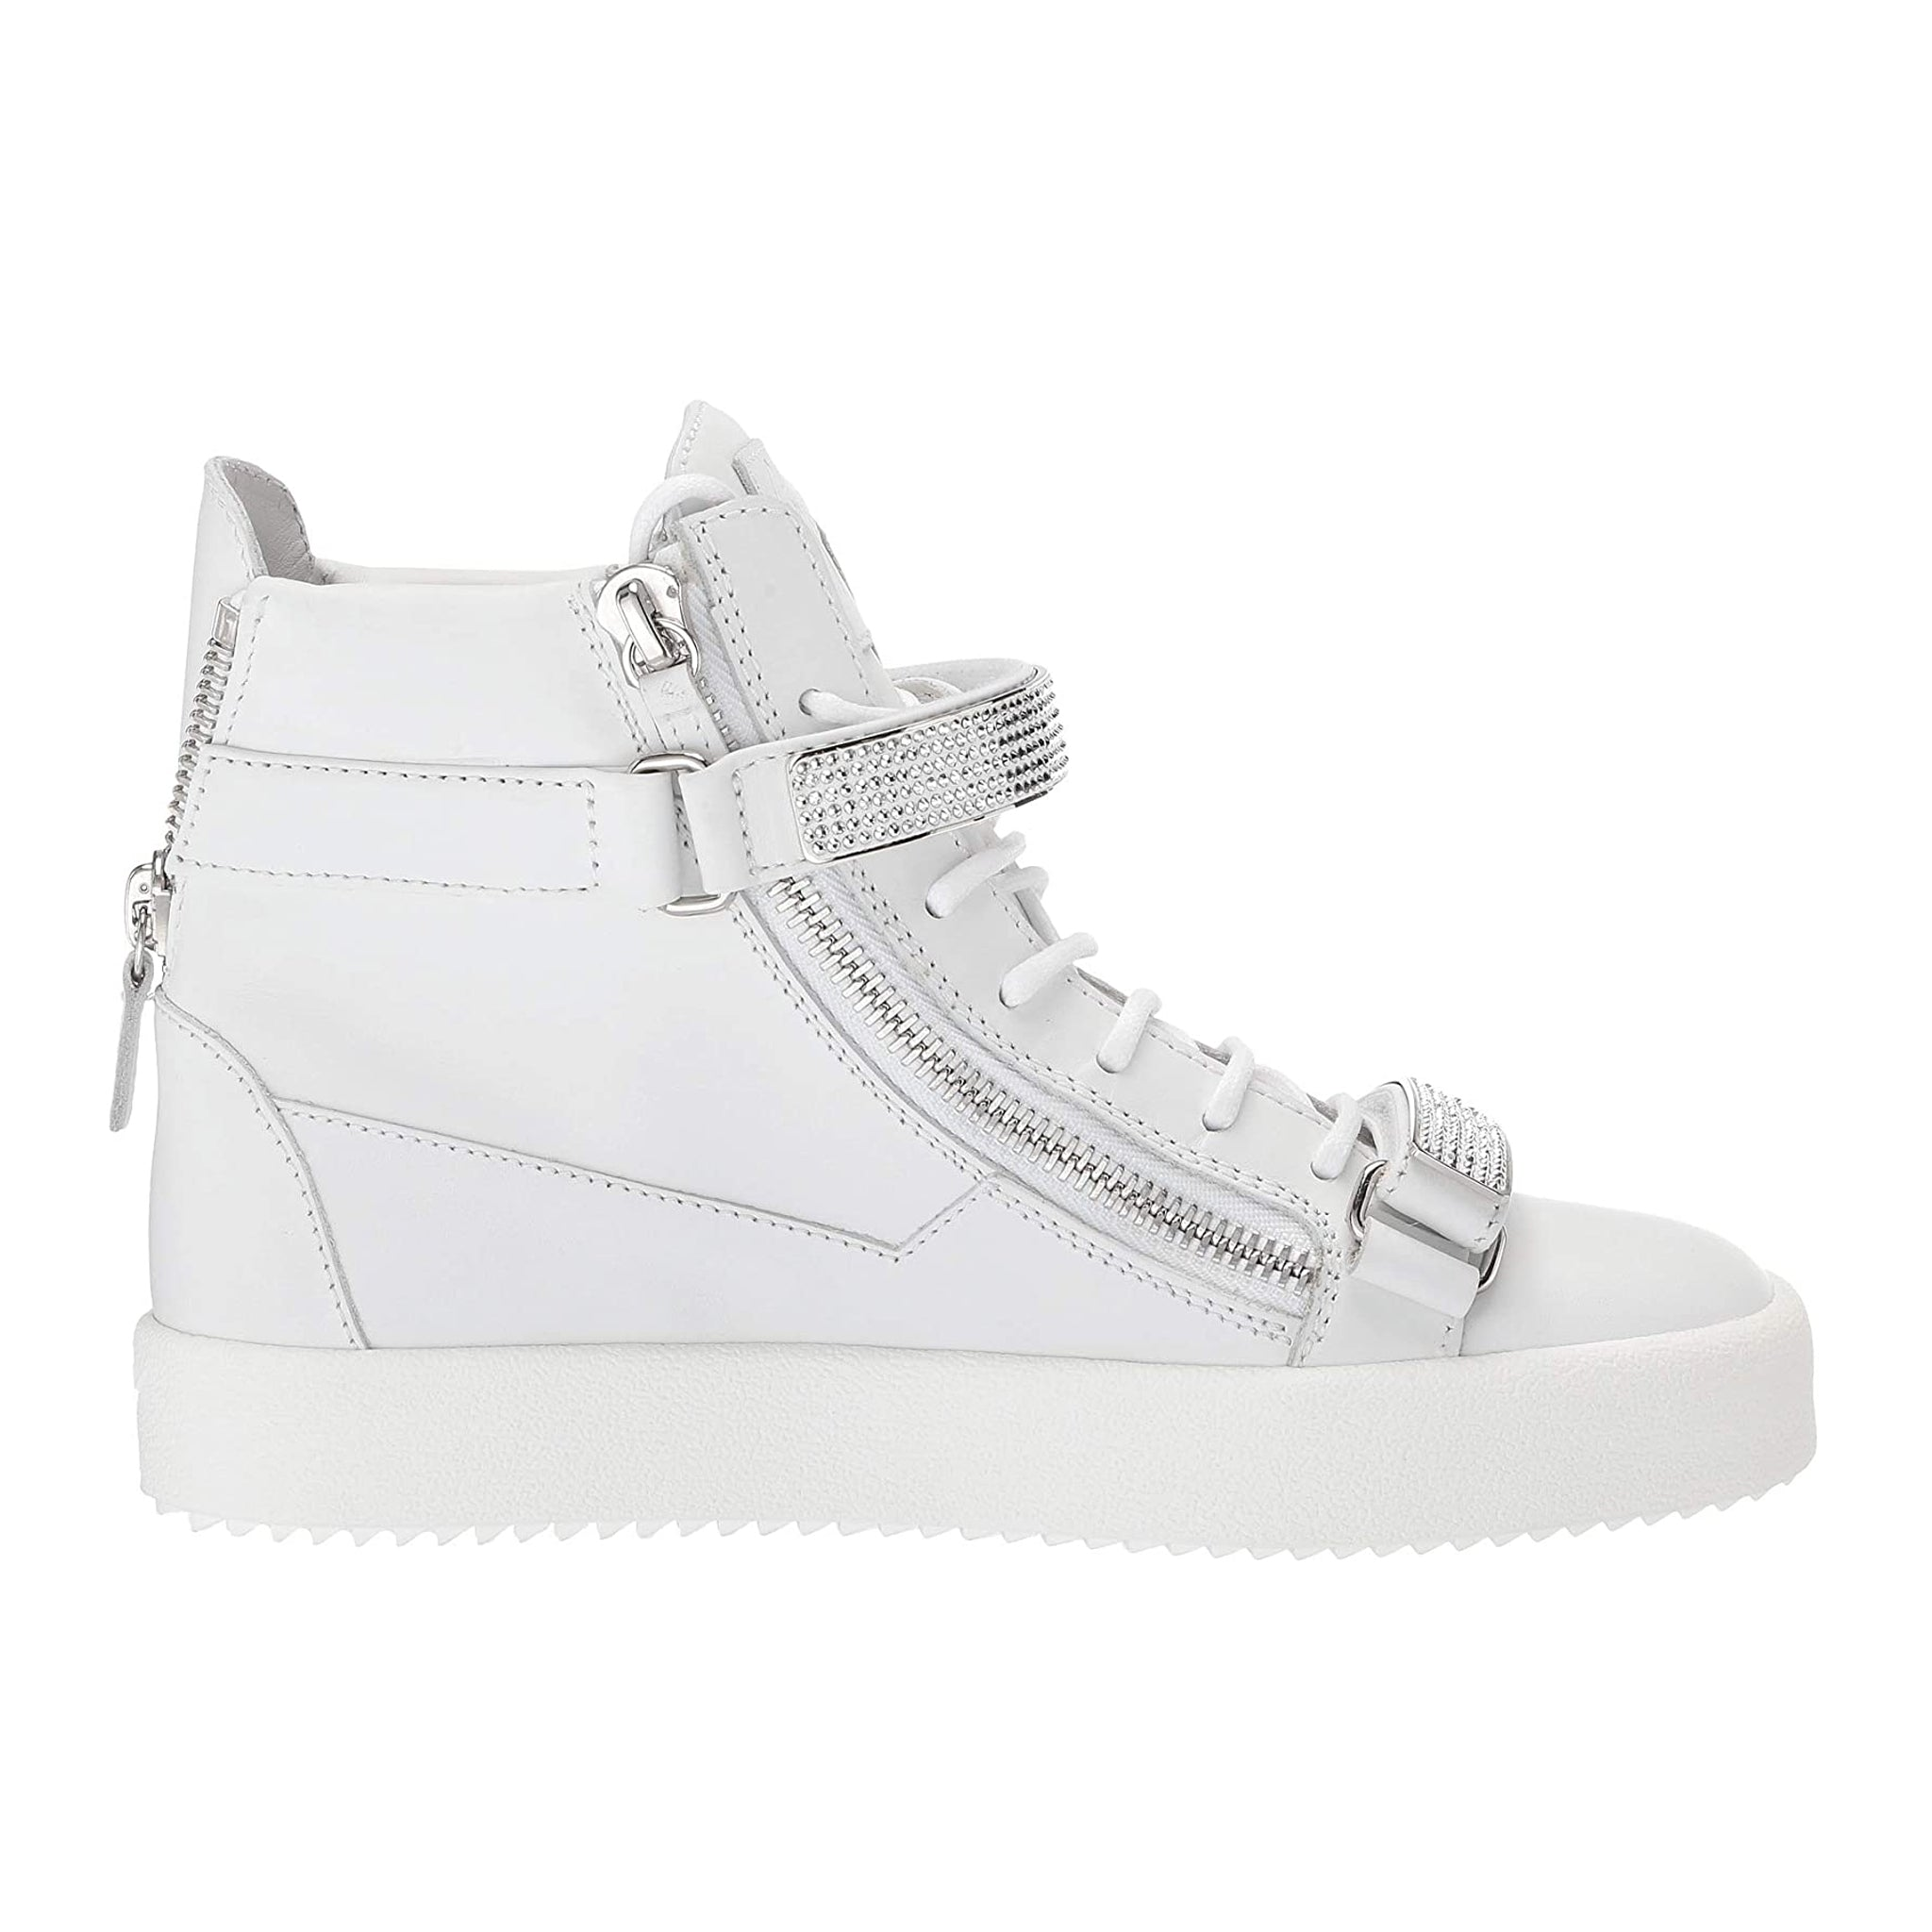 Giuseppe Zanotti Design Coby Crystal Leather Sneakers